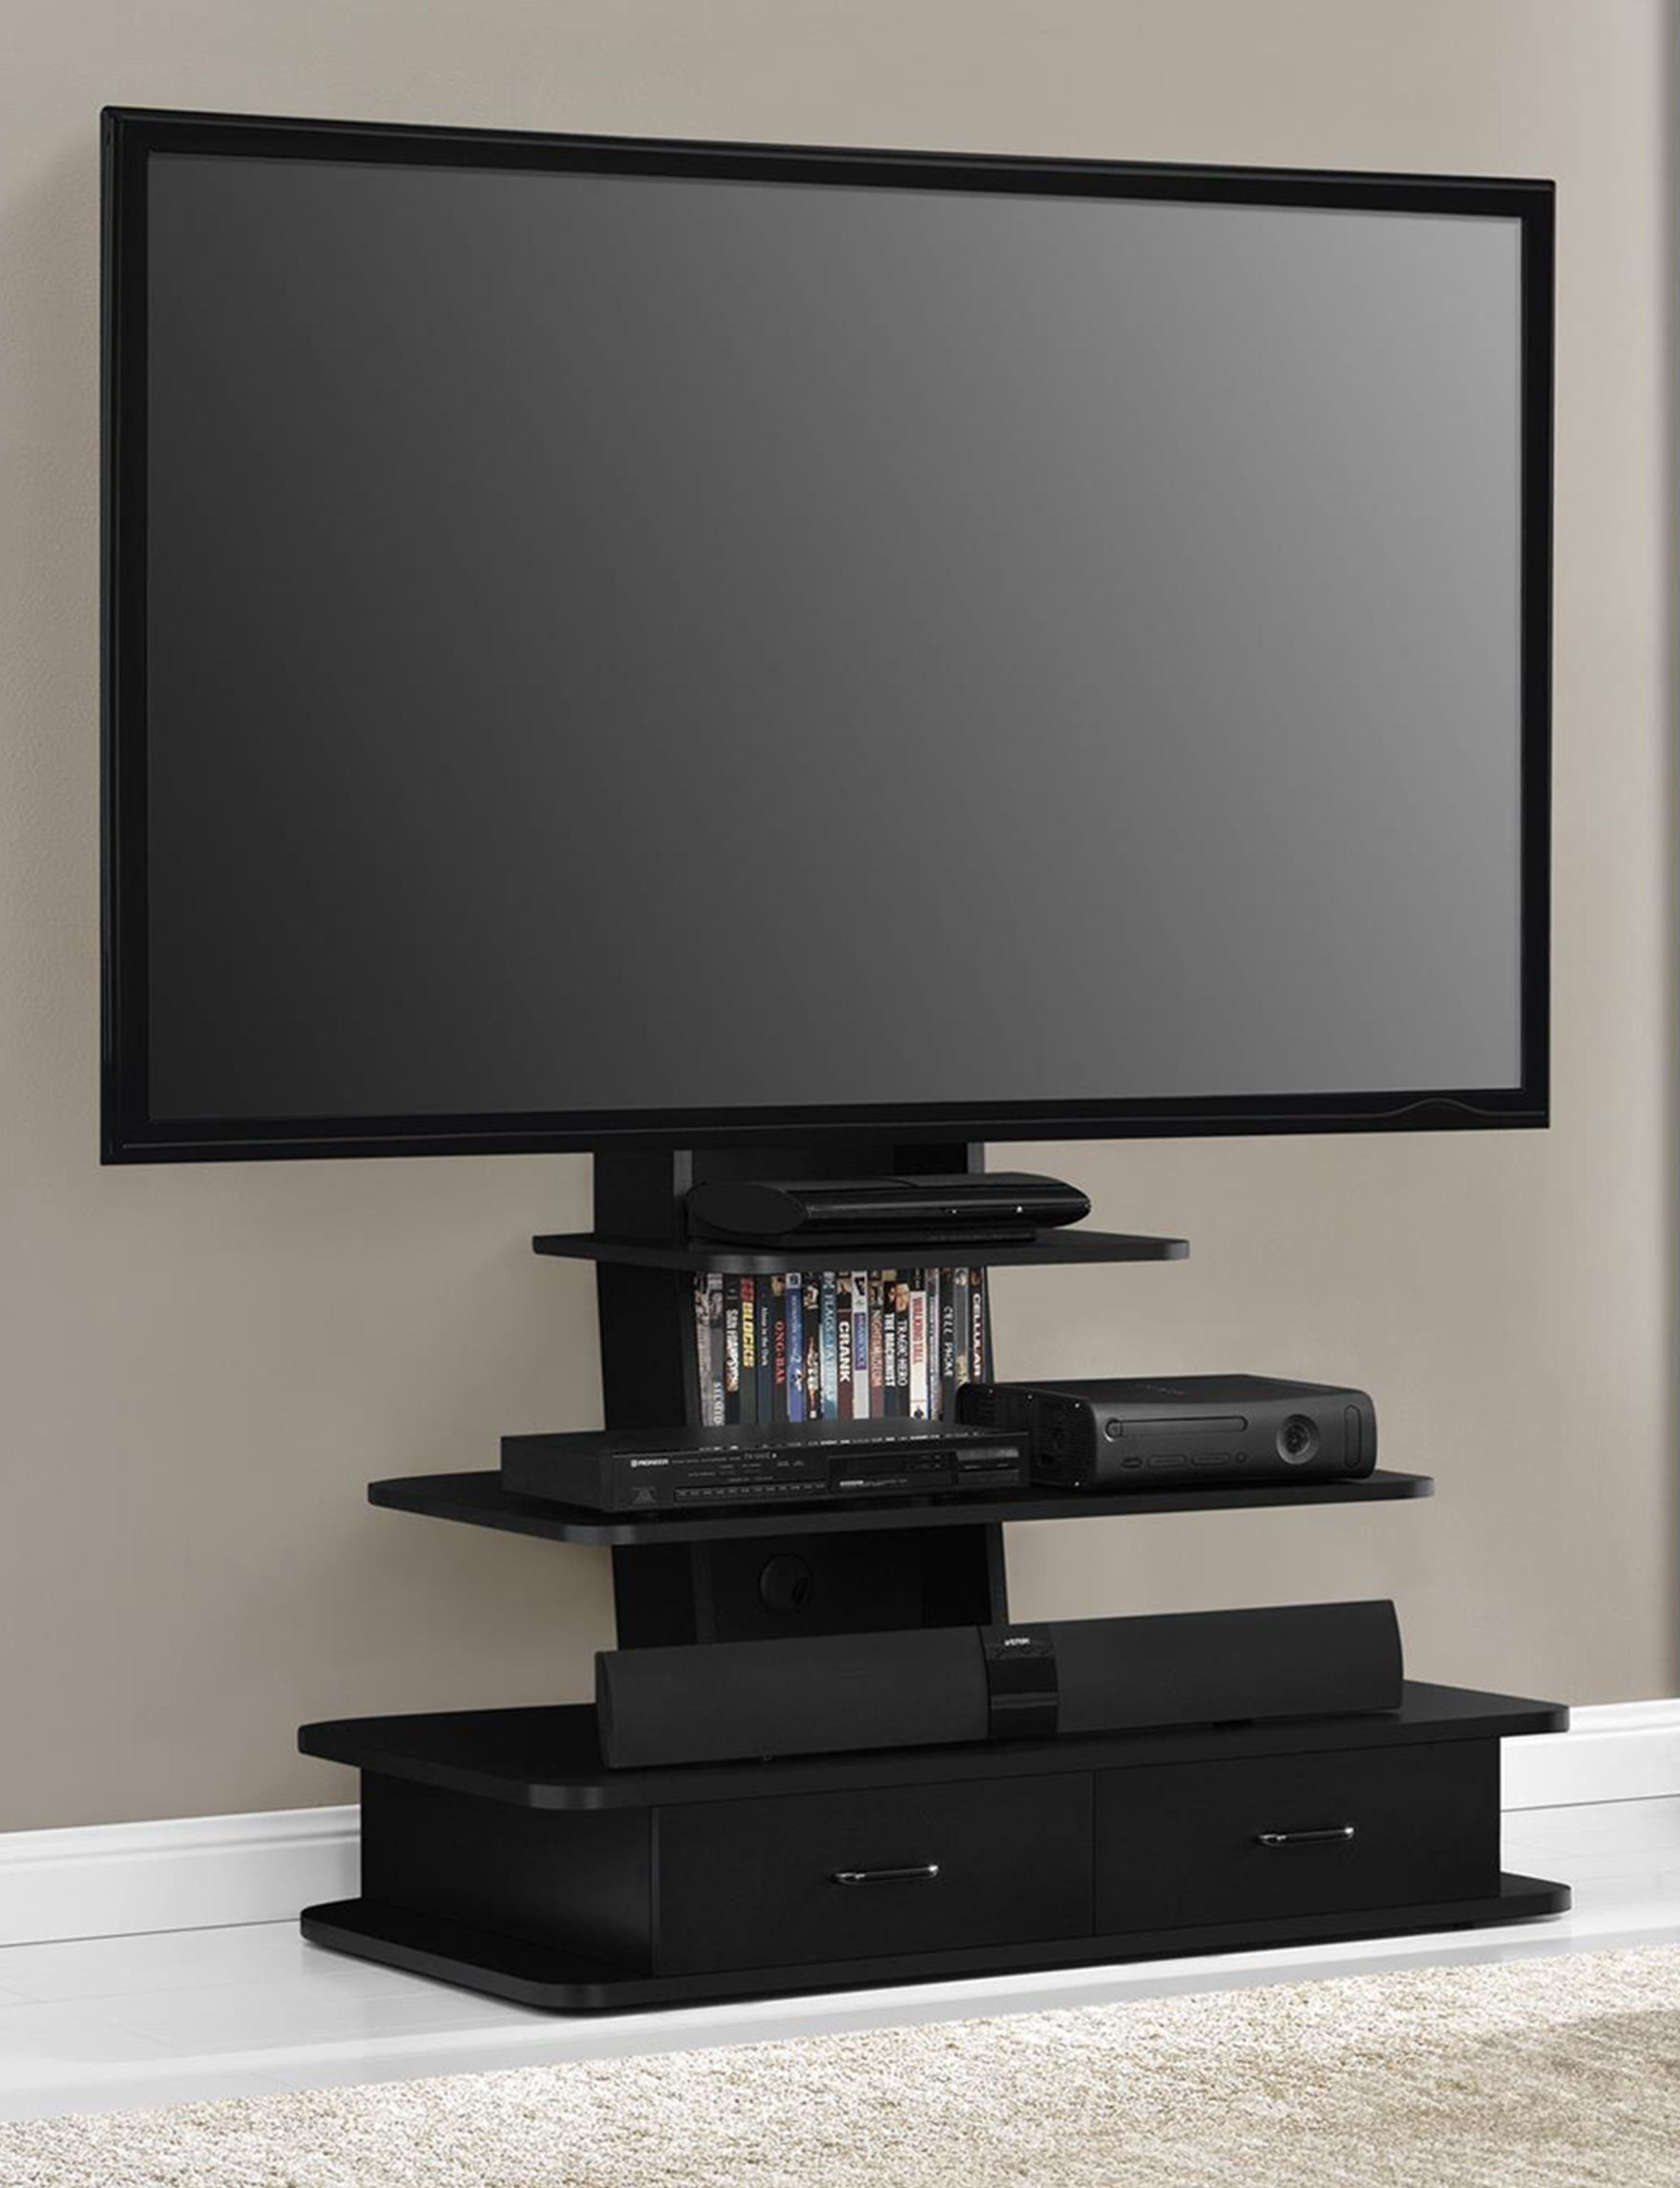 Ameriwood Black TV Stands & Entertainment Centers Living Room Furniture